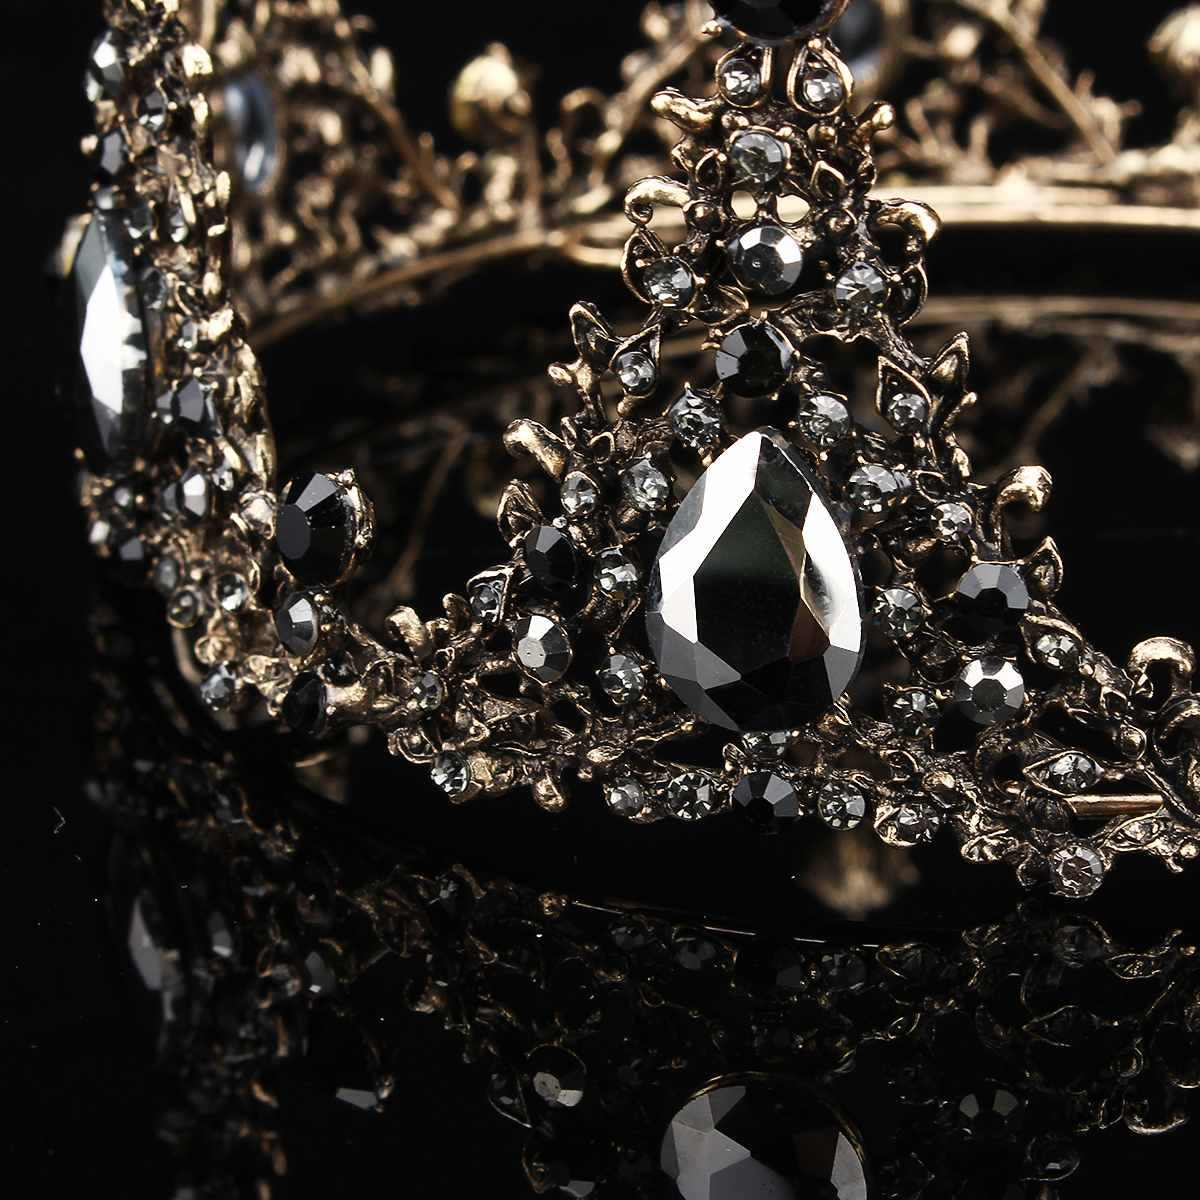 ... Baroque Full Round Tiara Black Rhinestone Crystal Crowns Vintage Queen  Pageant Bridal Wedding Hair Jewelry Accessories ... eaa2244e0ed6